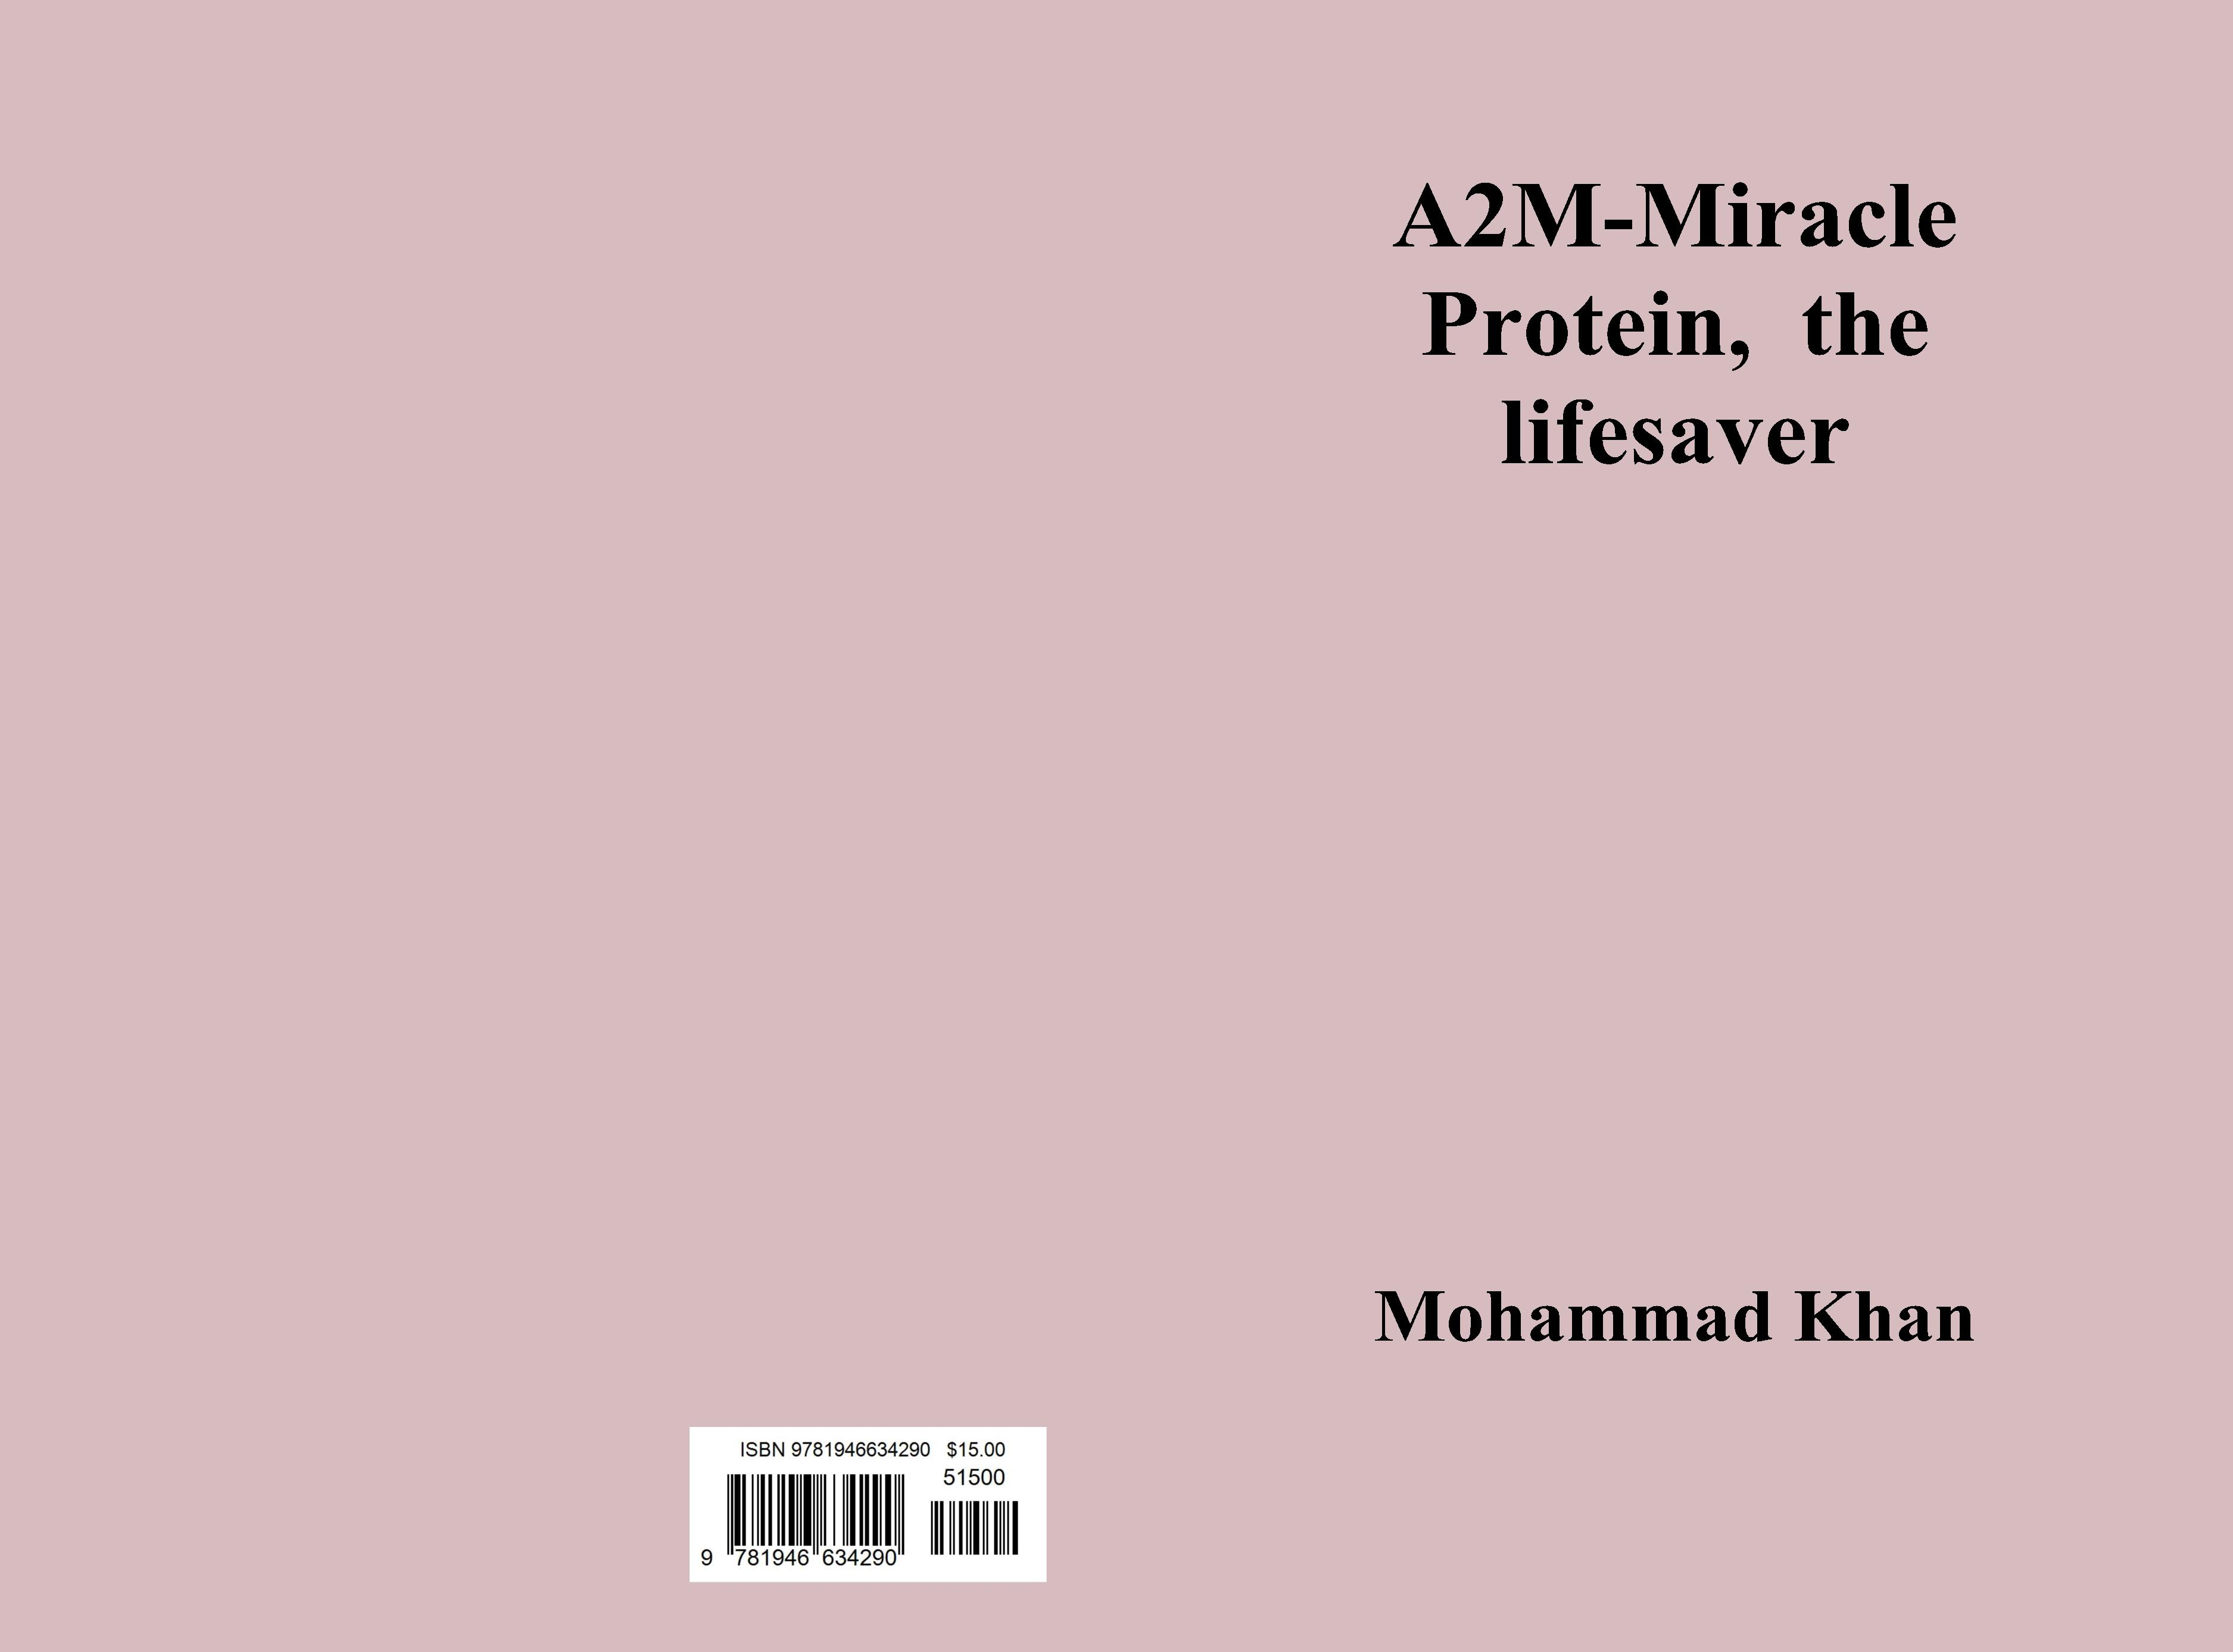 A2M-Miracle Protein, the lifesaver cover image